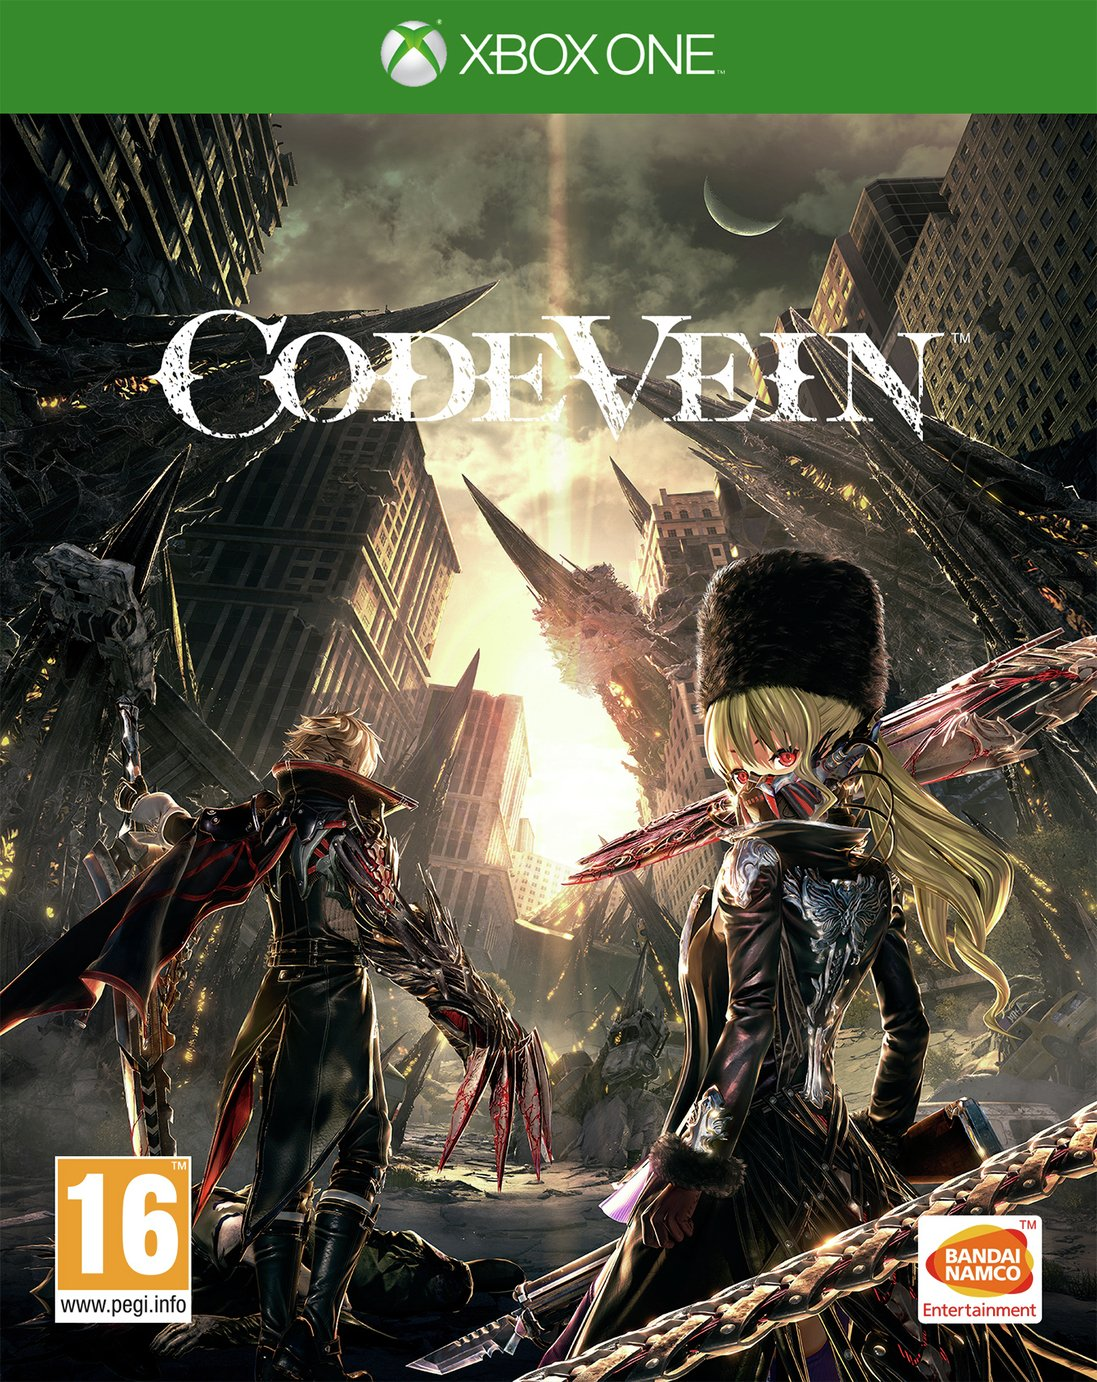 Image of Code Vein Xbox One Pre-Order Game.